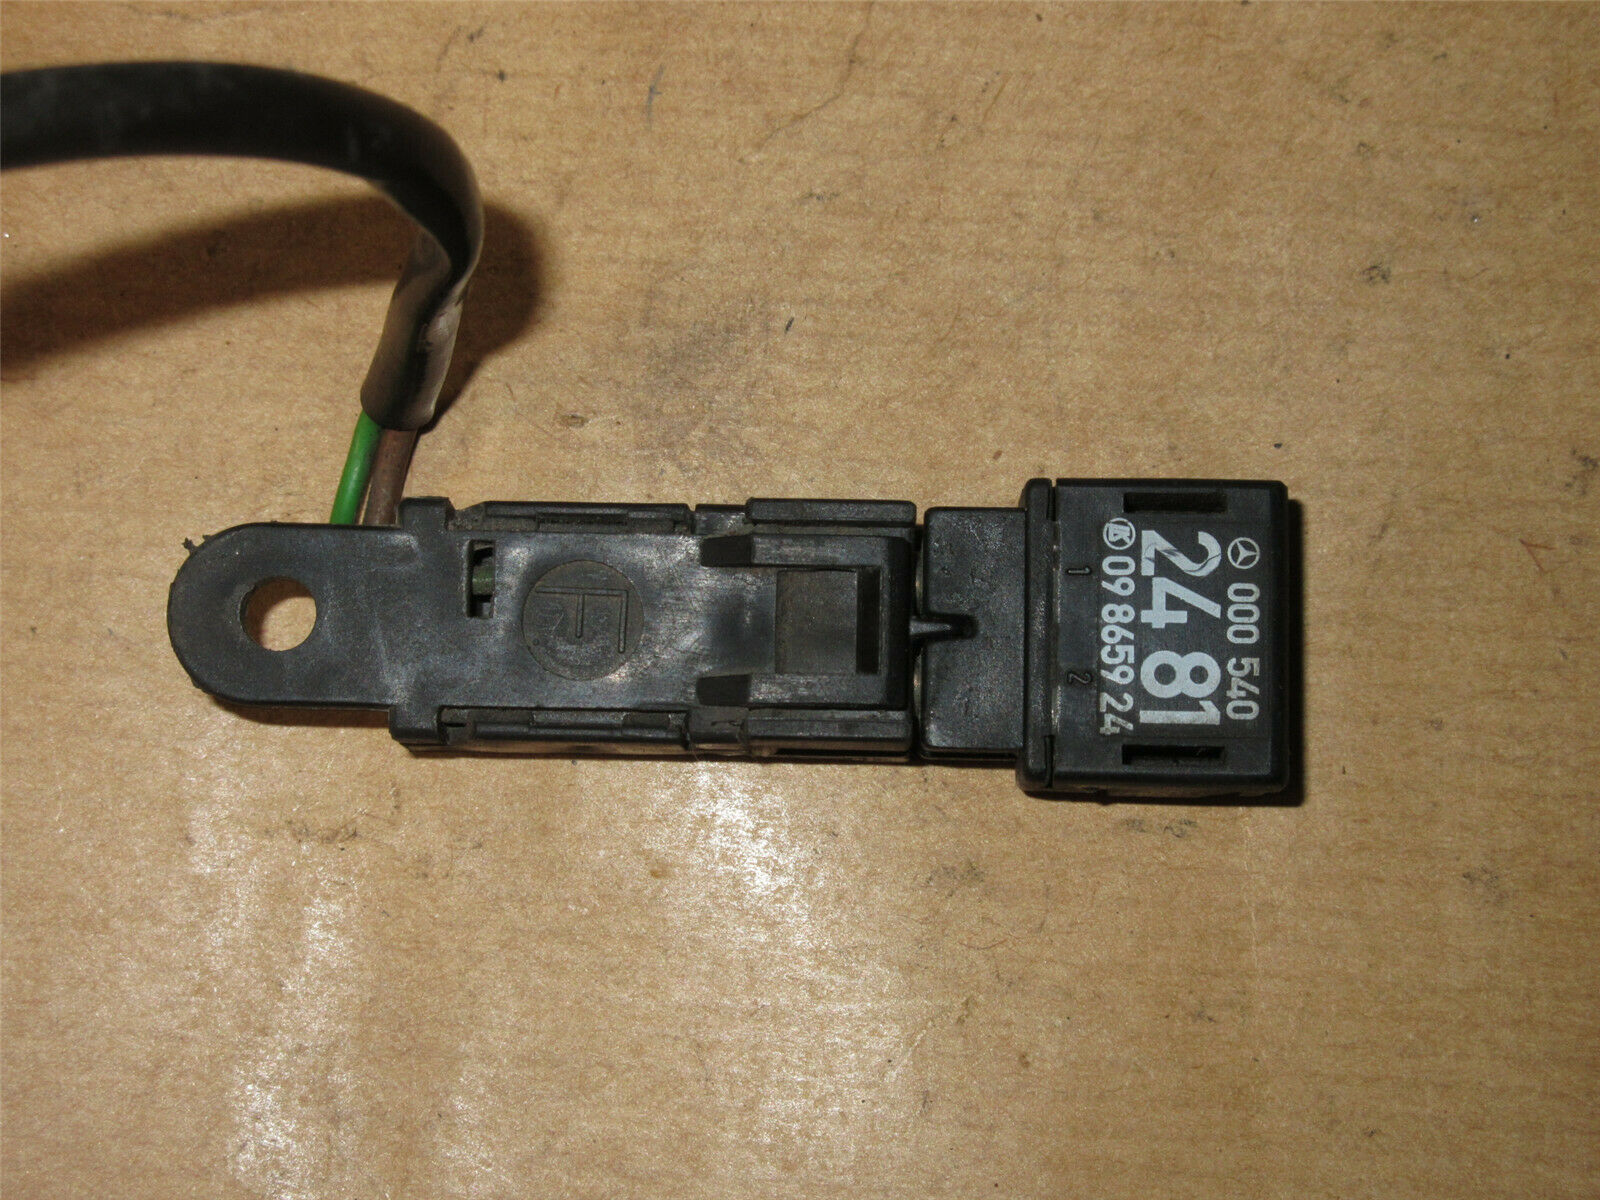 Fit For 86-93 Mercedes Benz 300E W124 Relay 000 540 24 81-09 8659 24 - $26.80